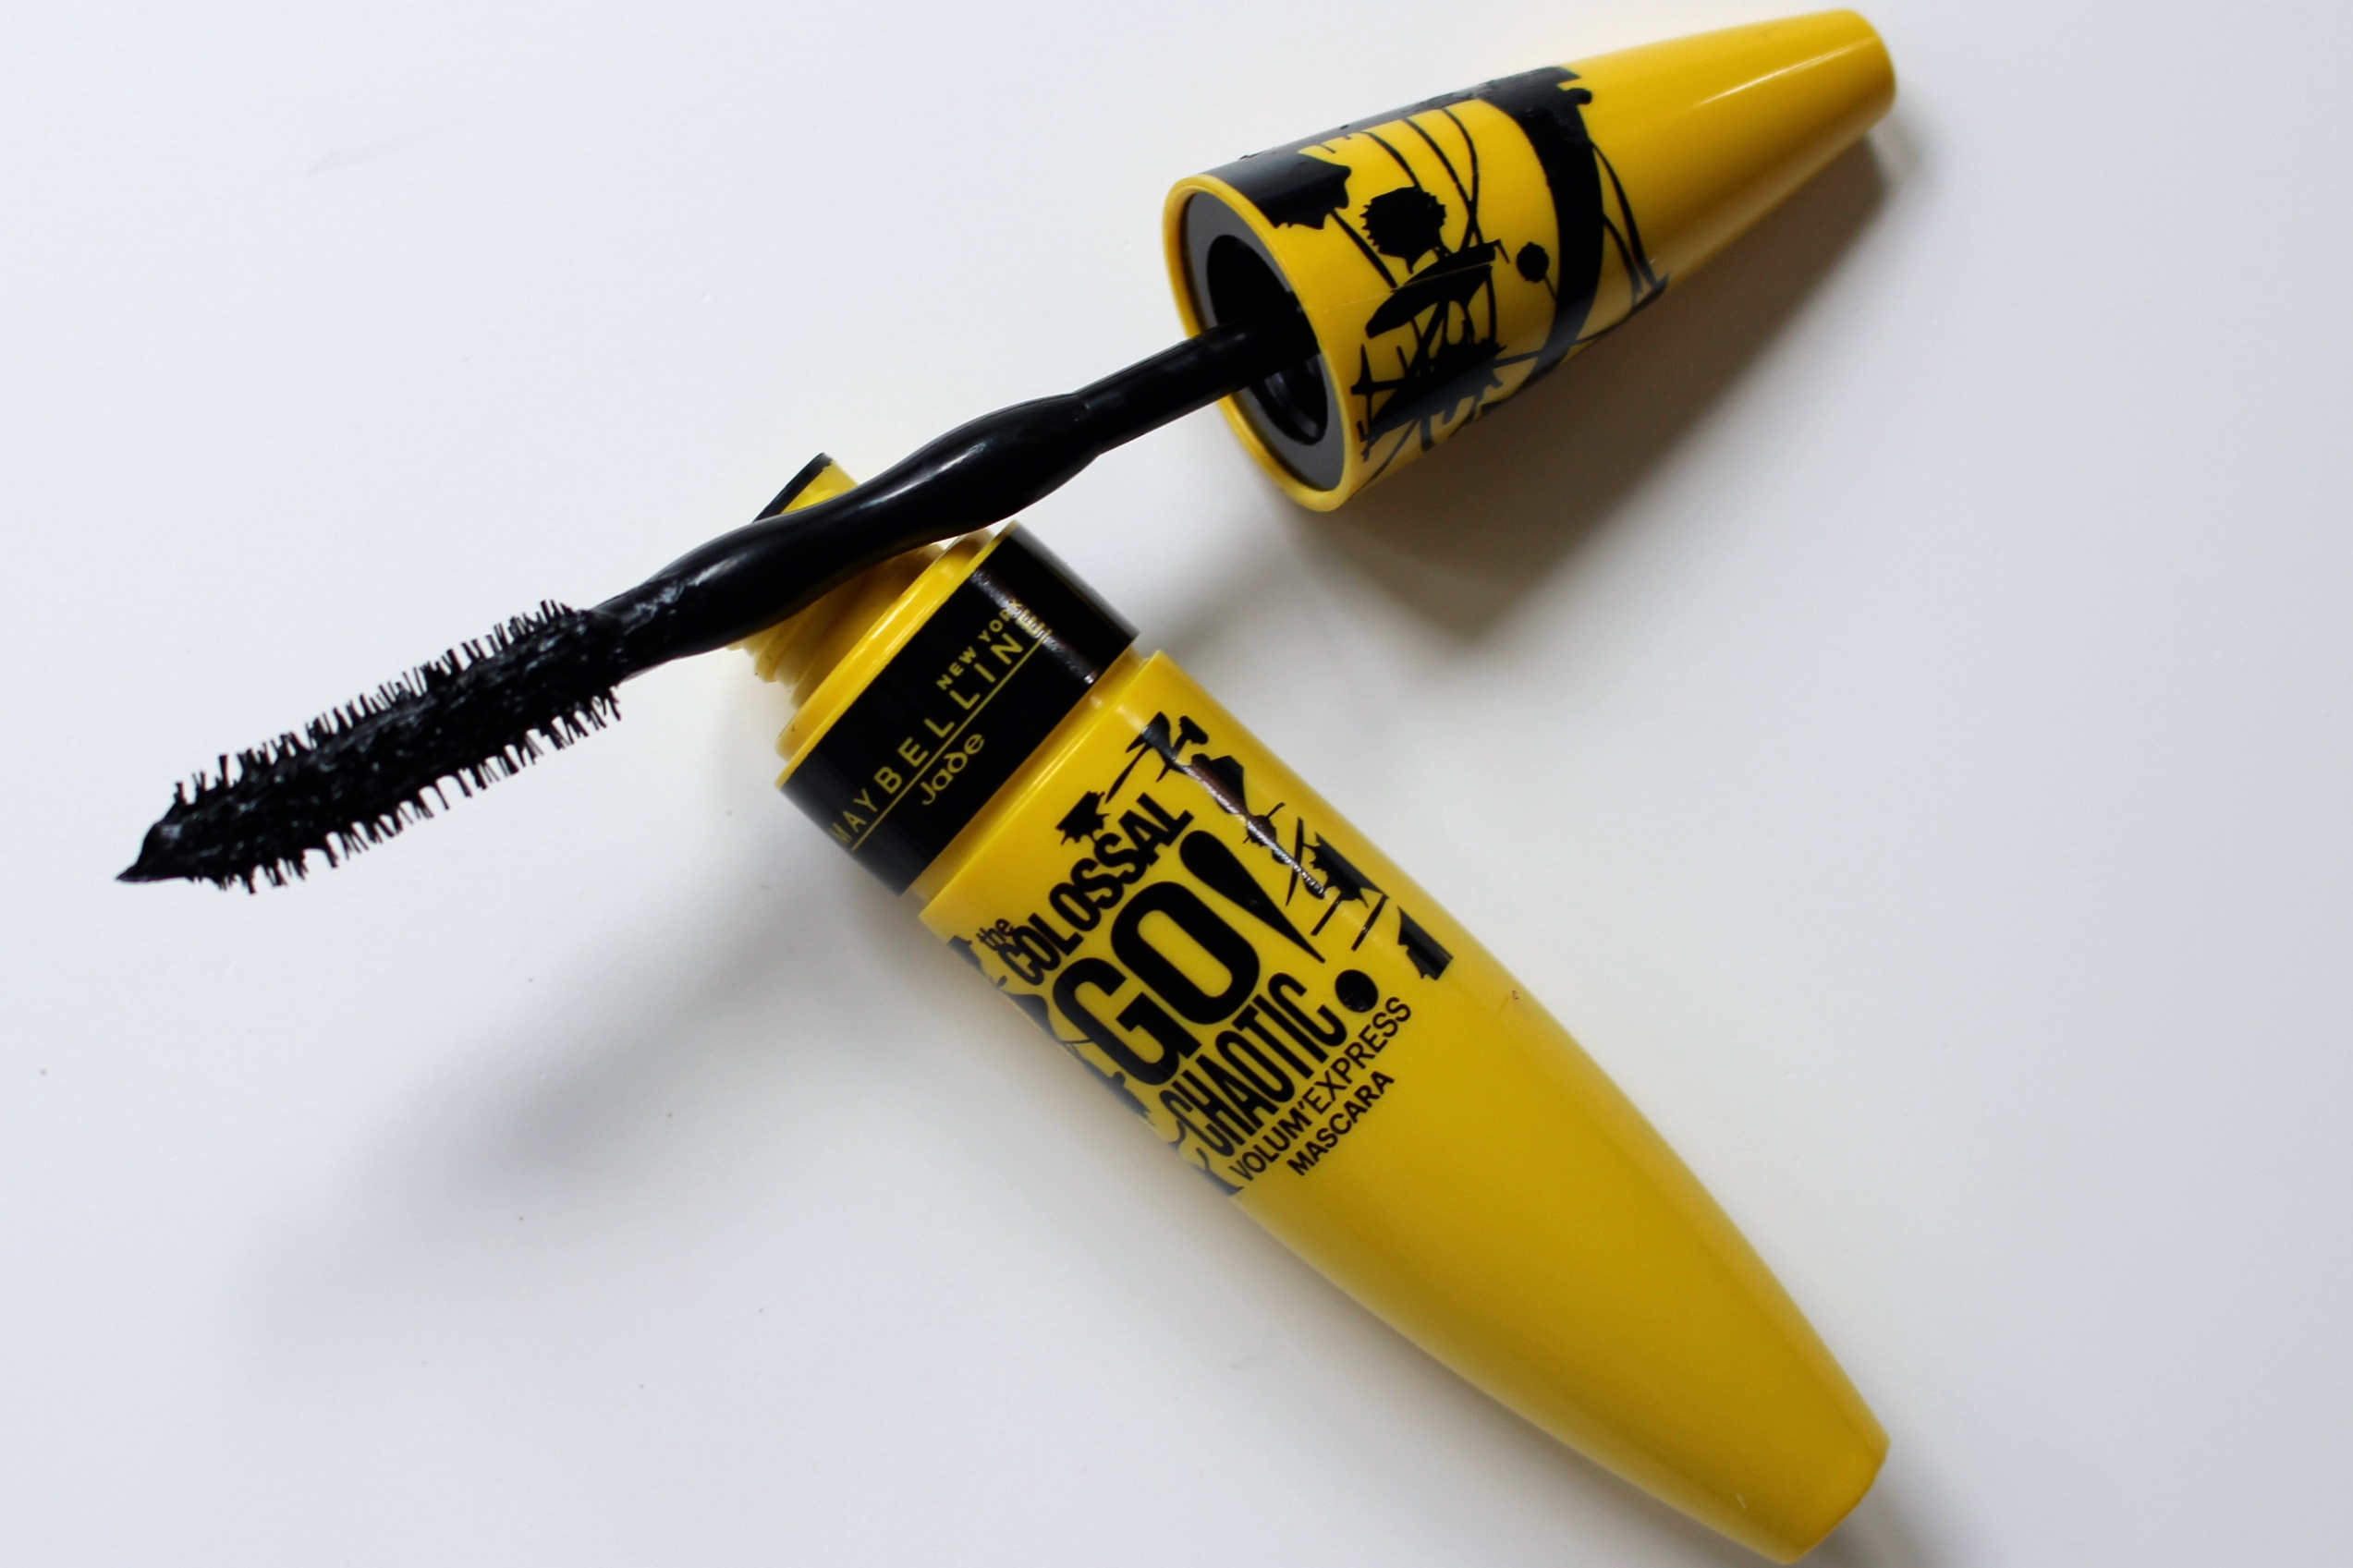 The colossal Go Chaotic! Mascara